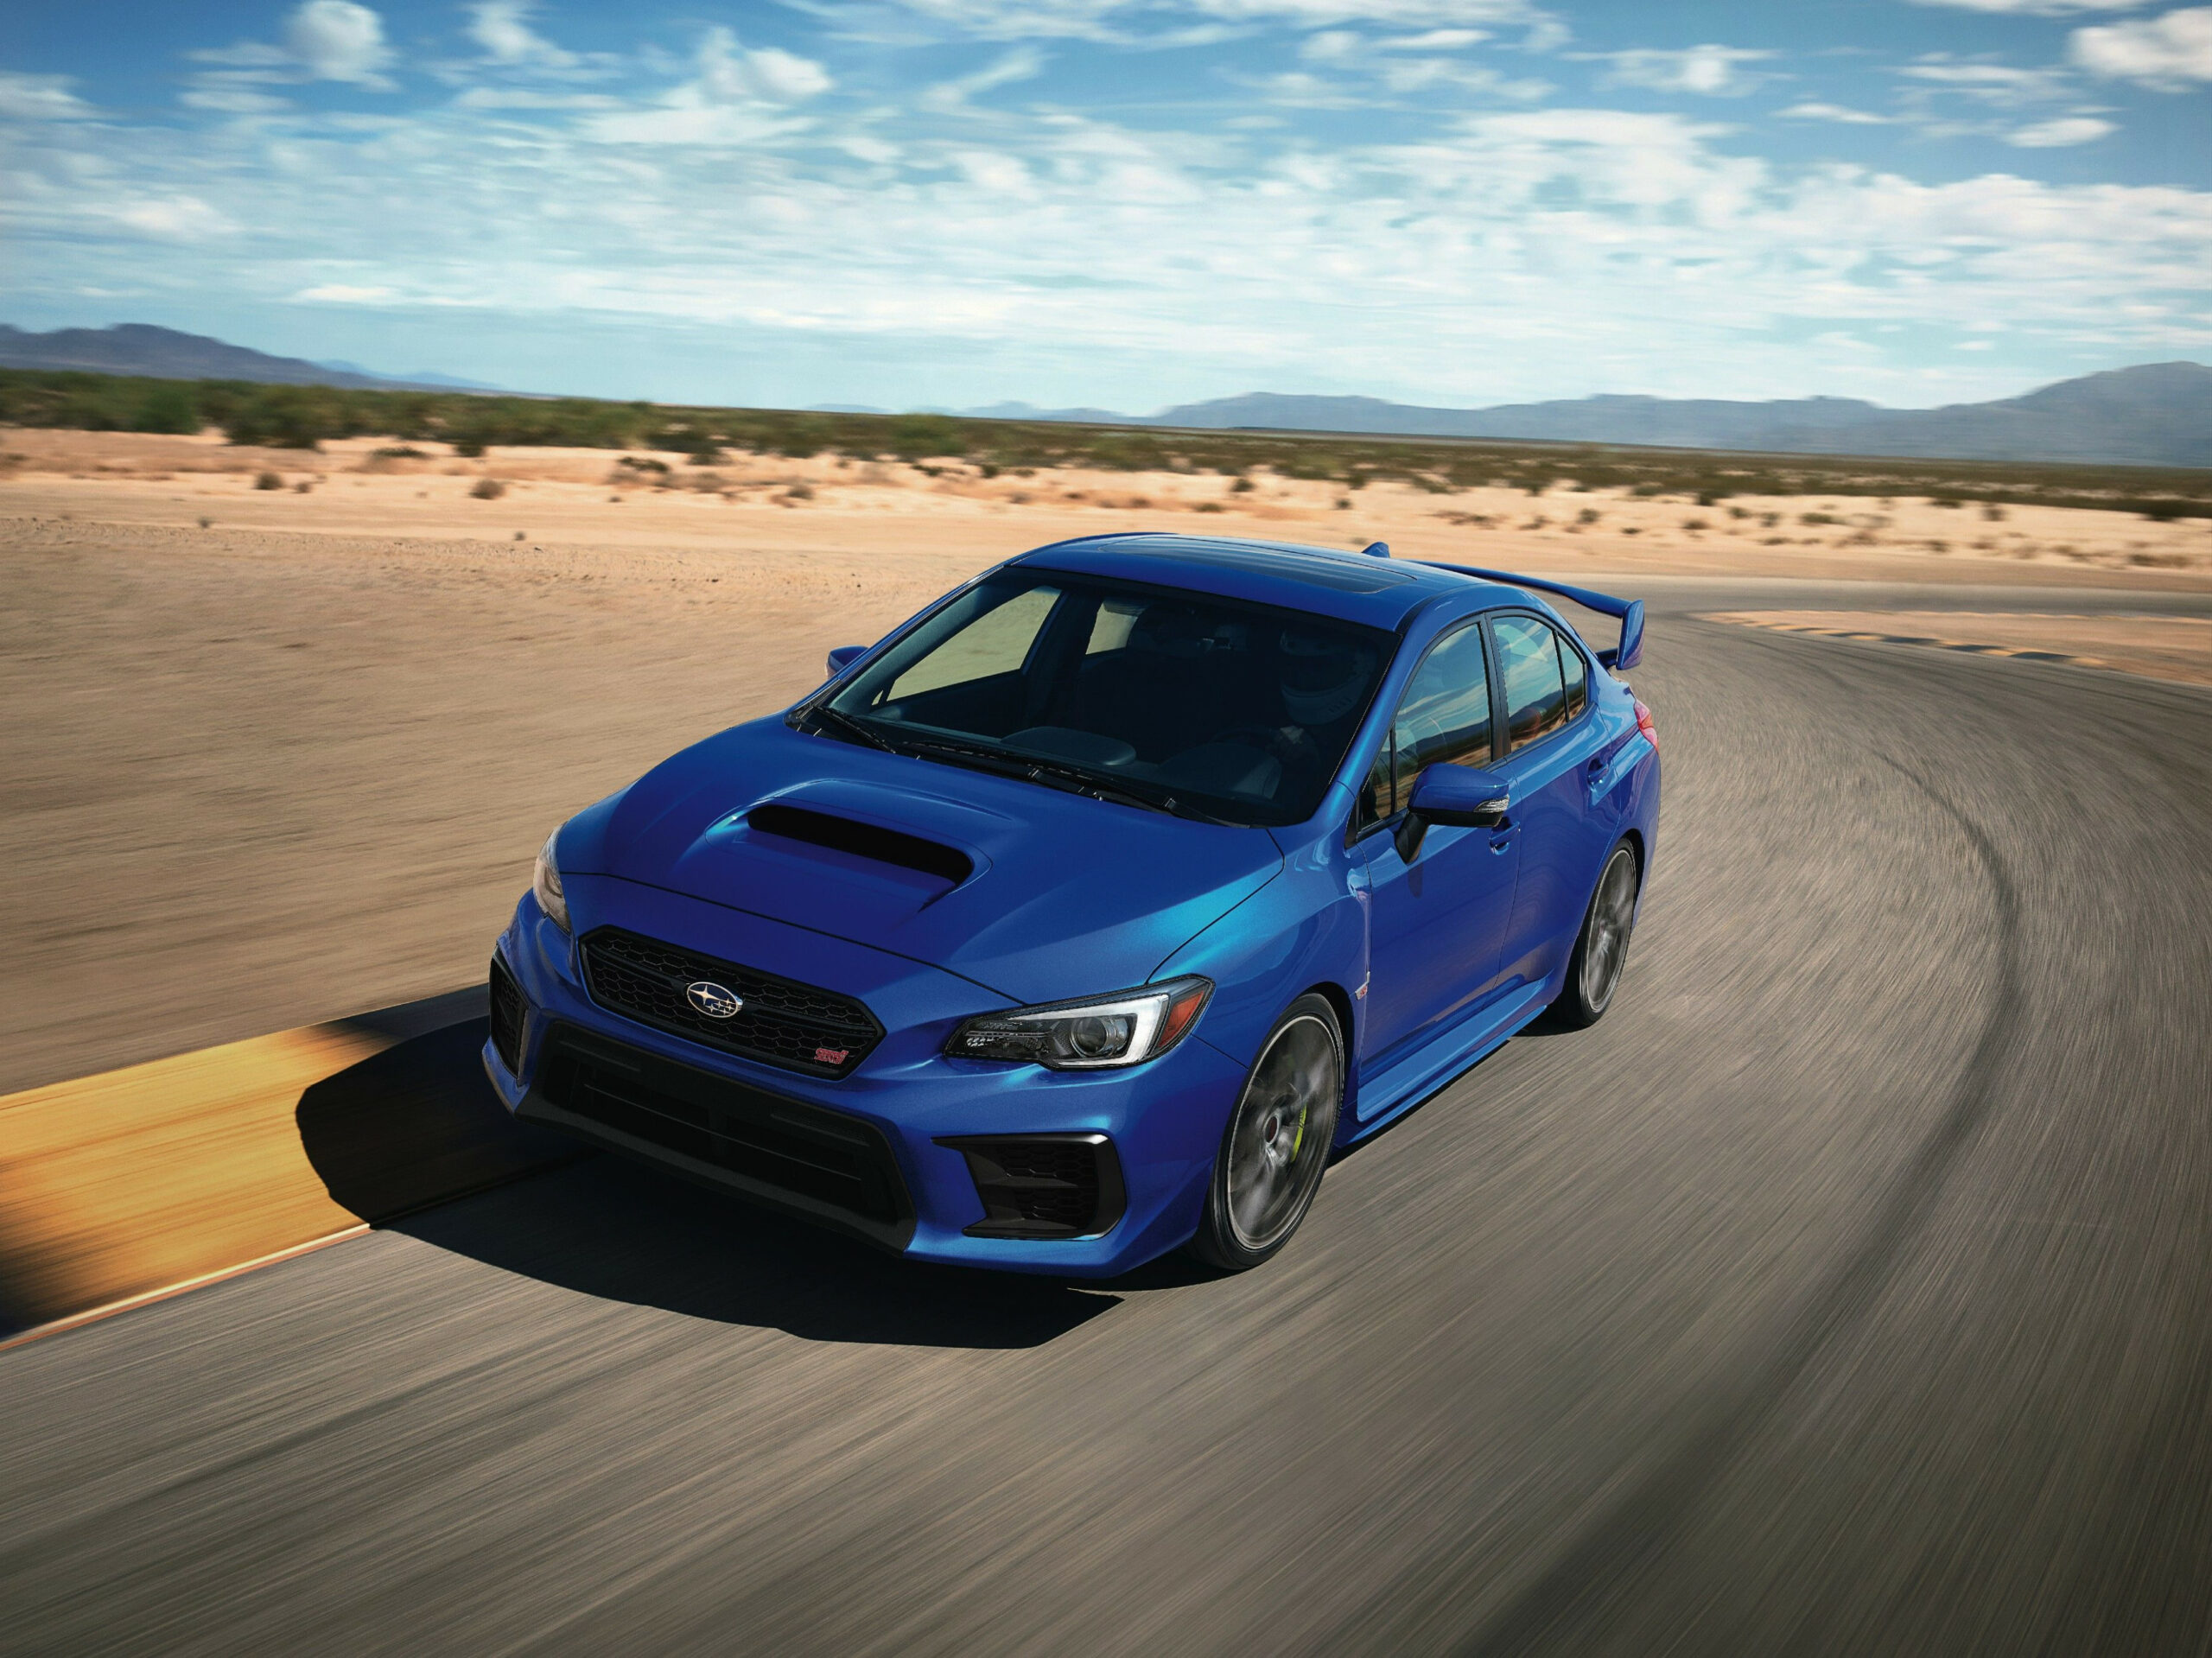 11 Subaru WRX STI Review, Pricing, and Specs